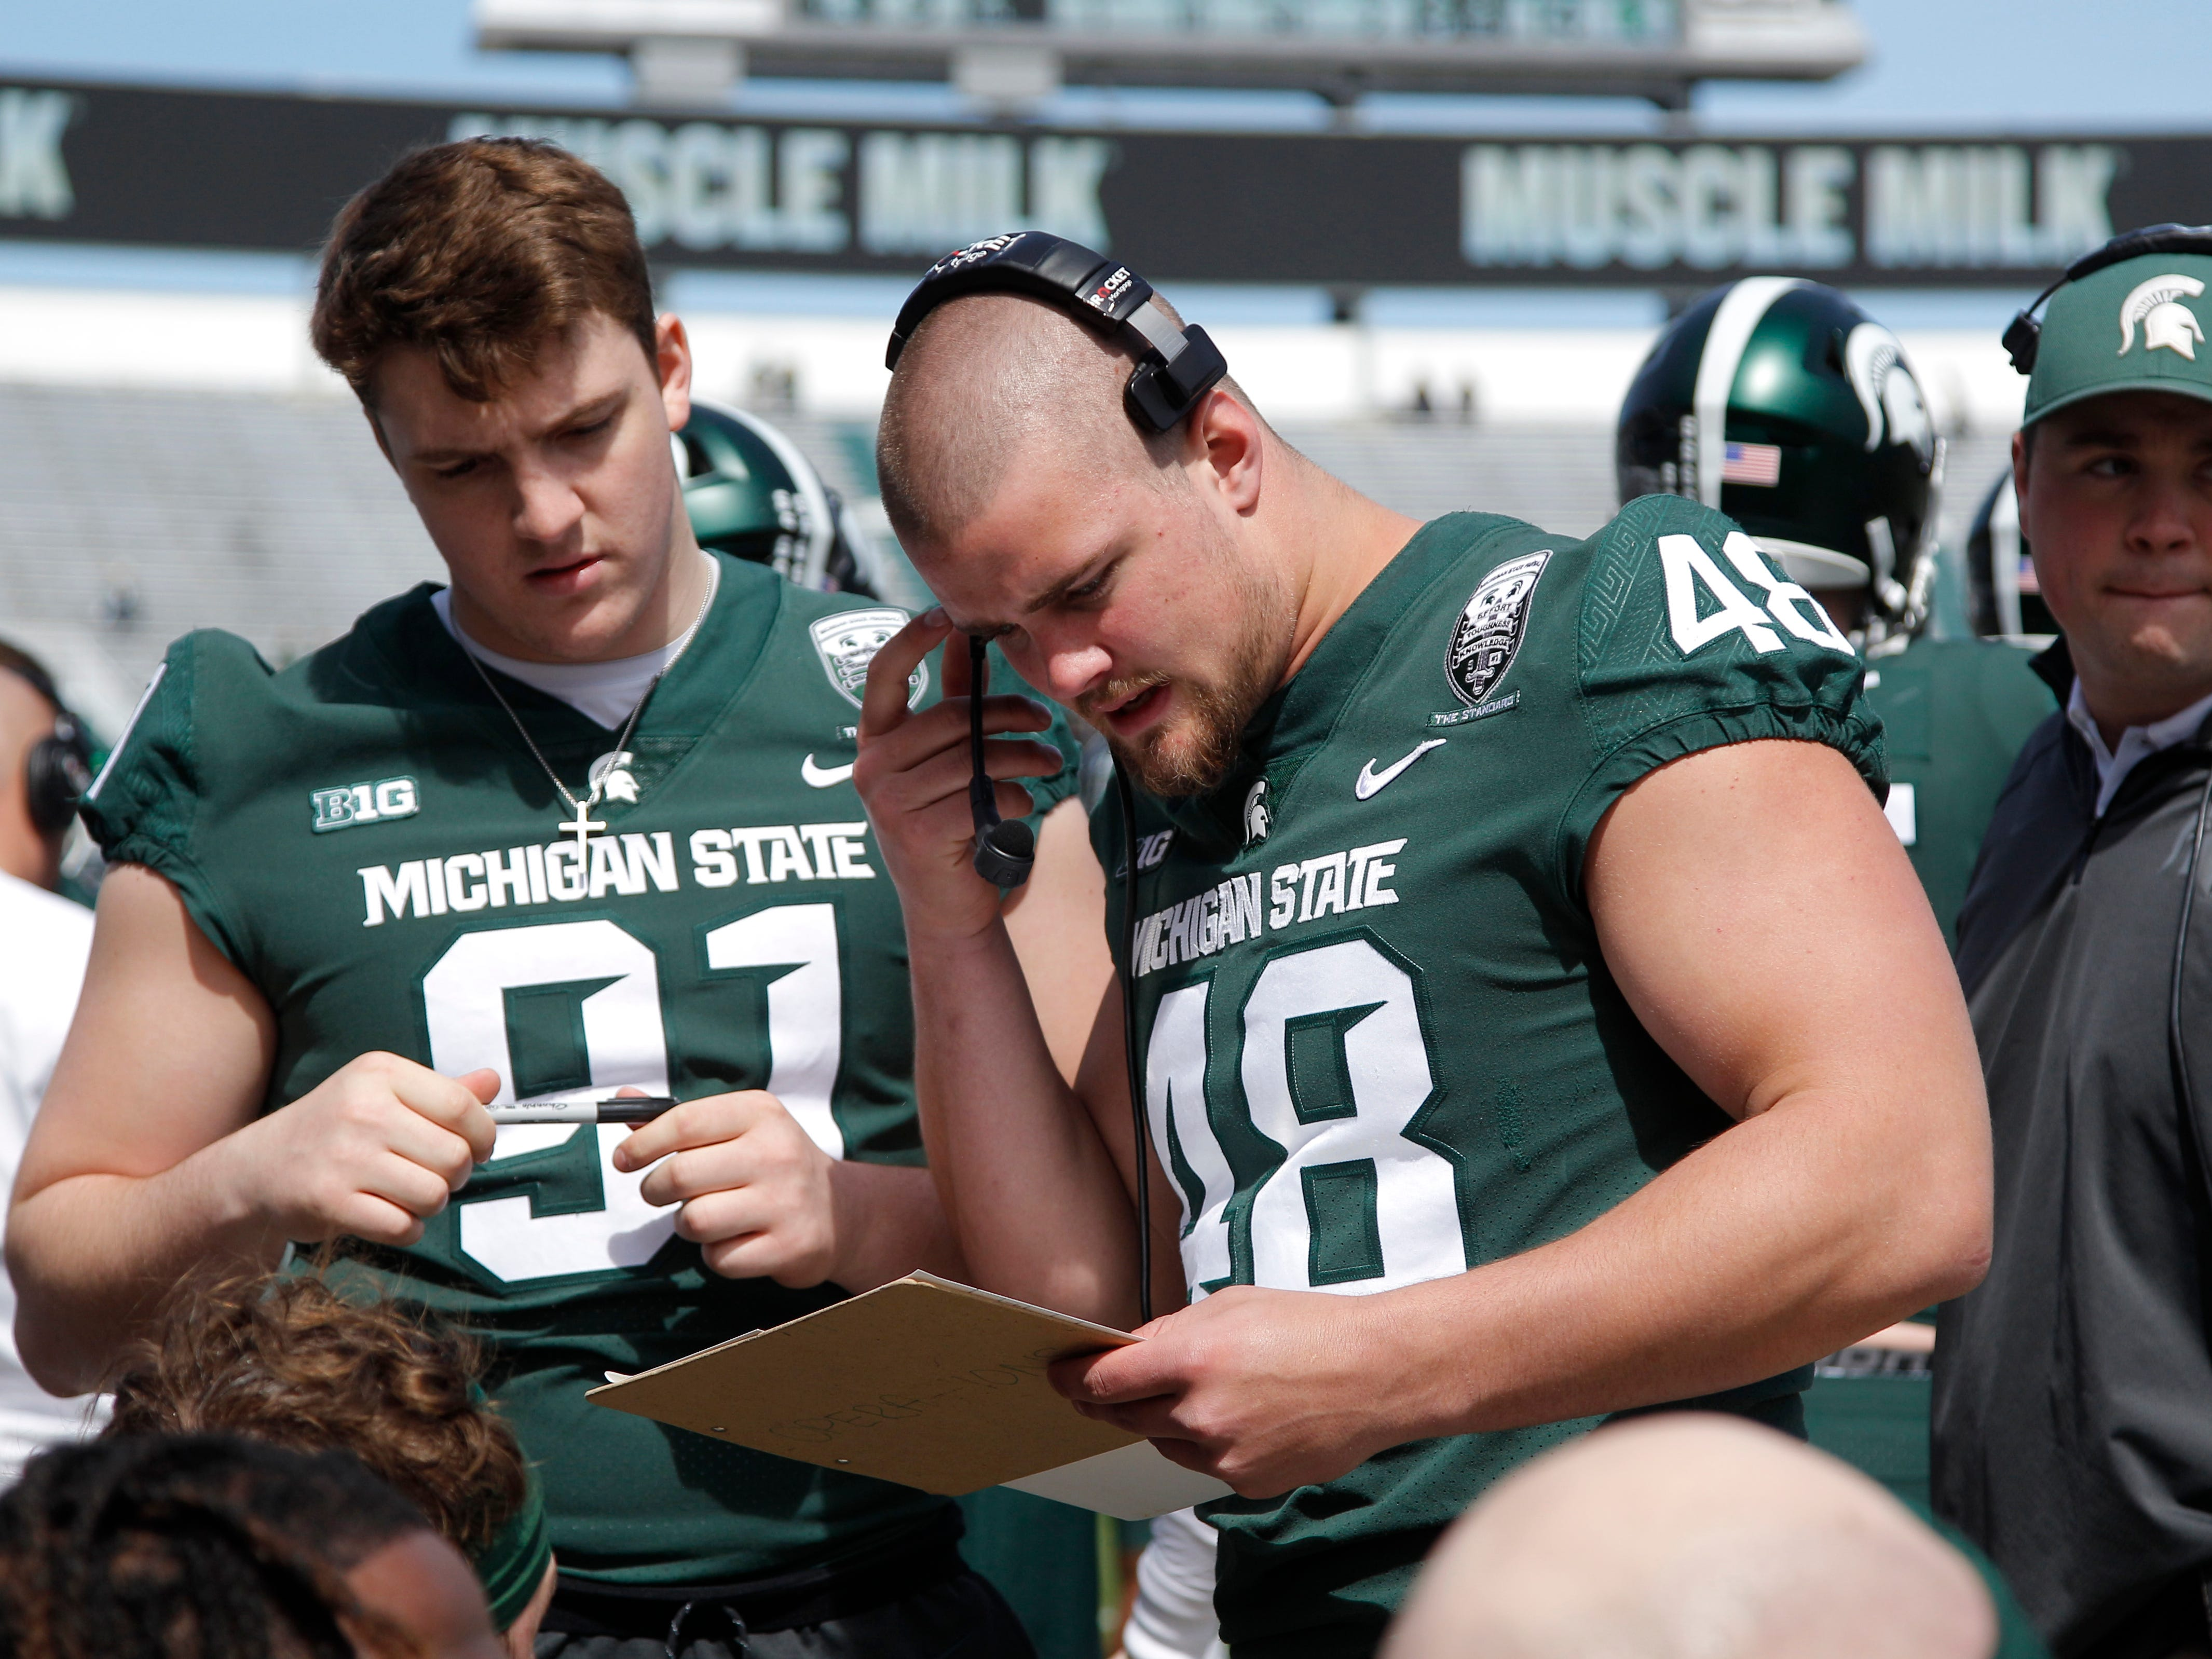 Michigan State defensive ends Kenny Willekes (48) and Jack Camper, left, are shown in the bench area during an NCAA college football spring scrimmage game, Saturday, April 13, 2019, in East Lansing, Mich. (AP Photo/Al Goldis)